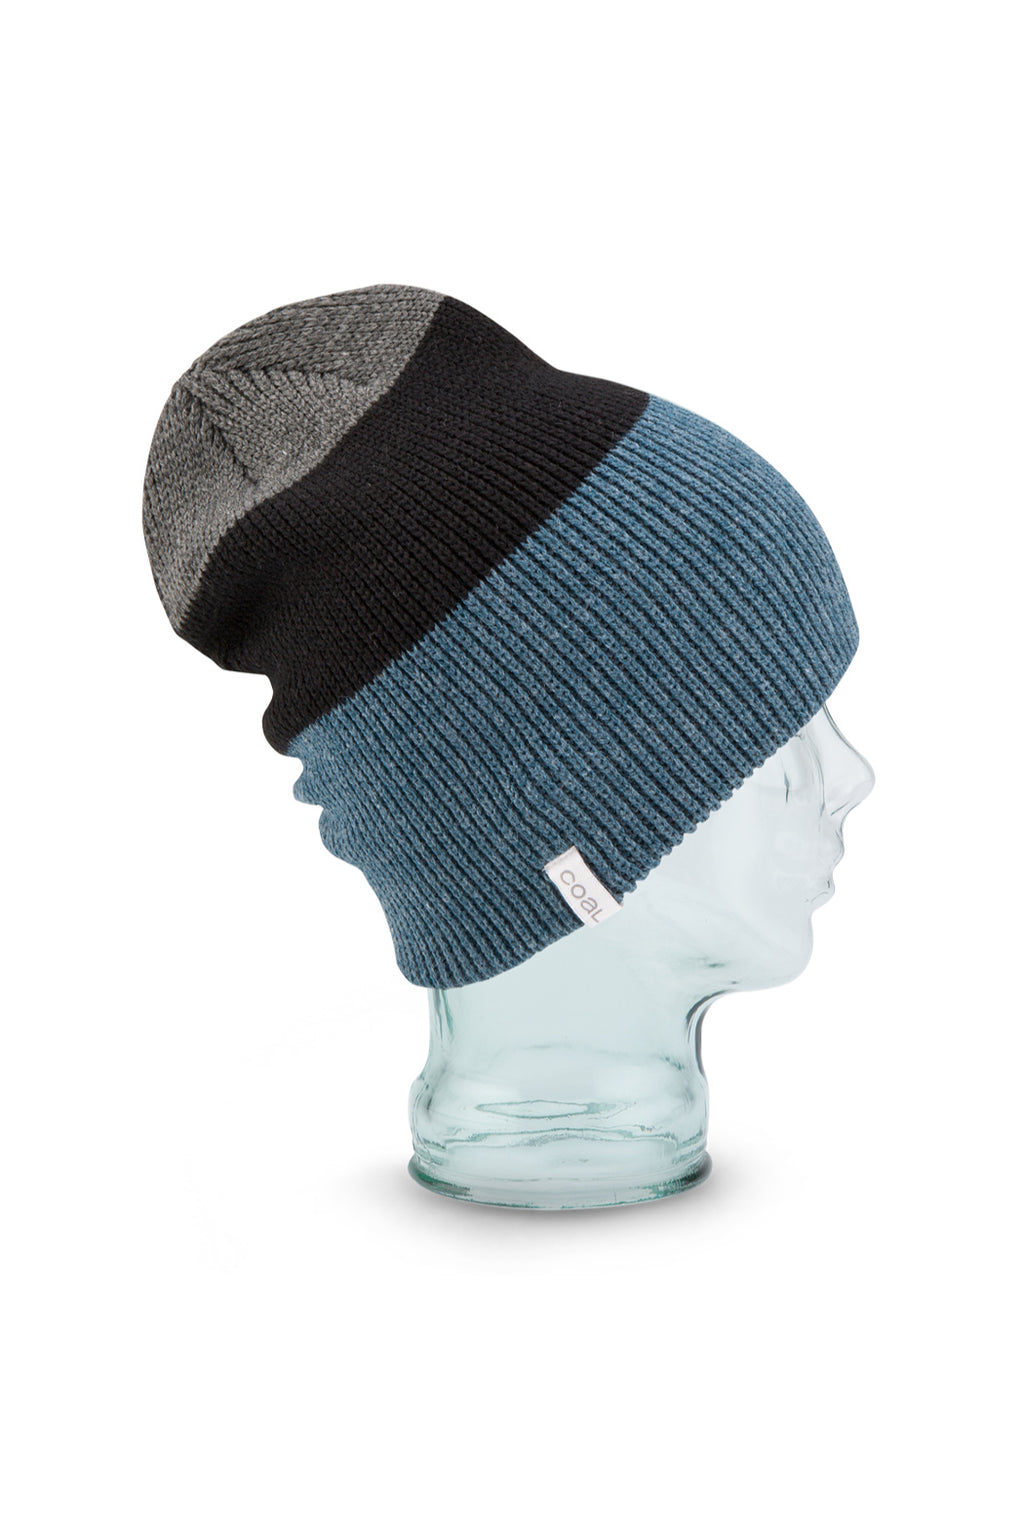 Coal Frena Beanie in Heather Slate Stripe